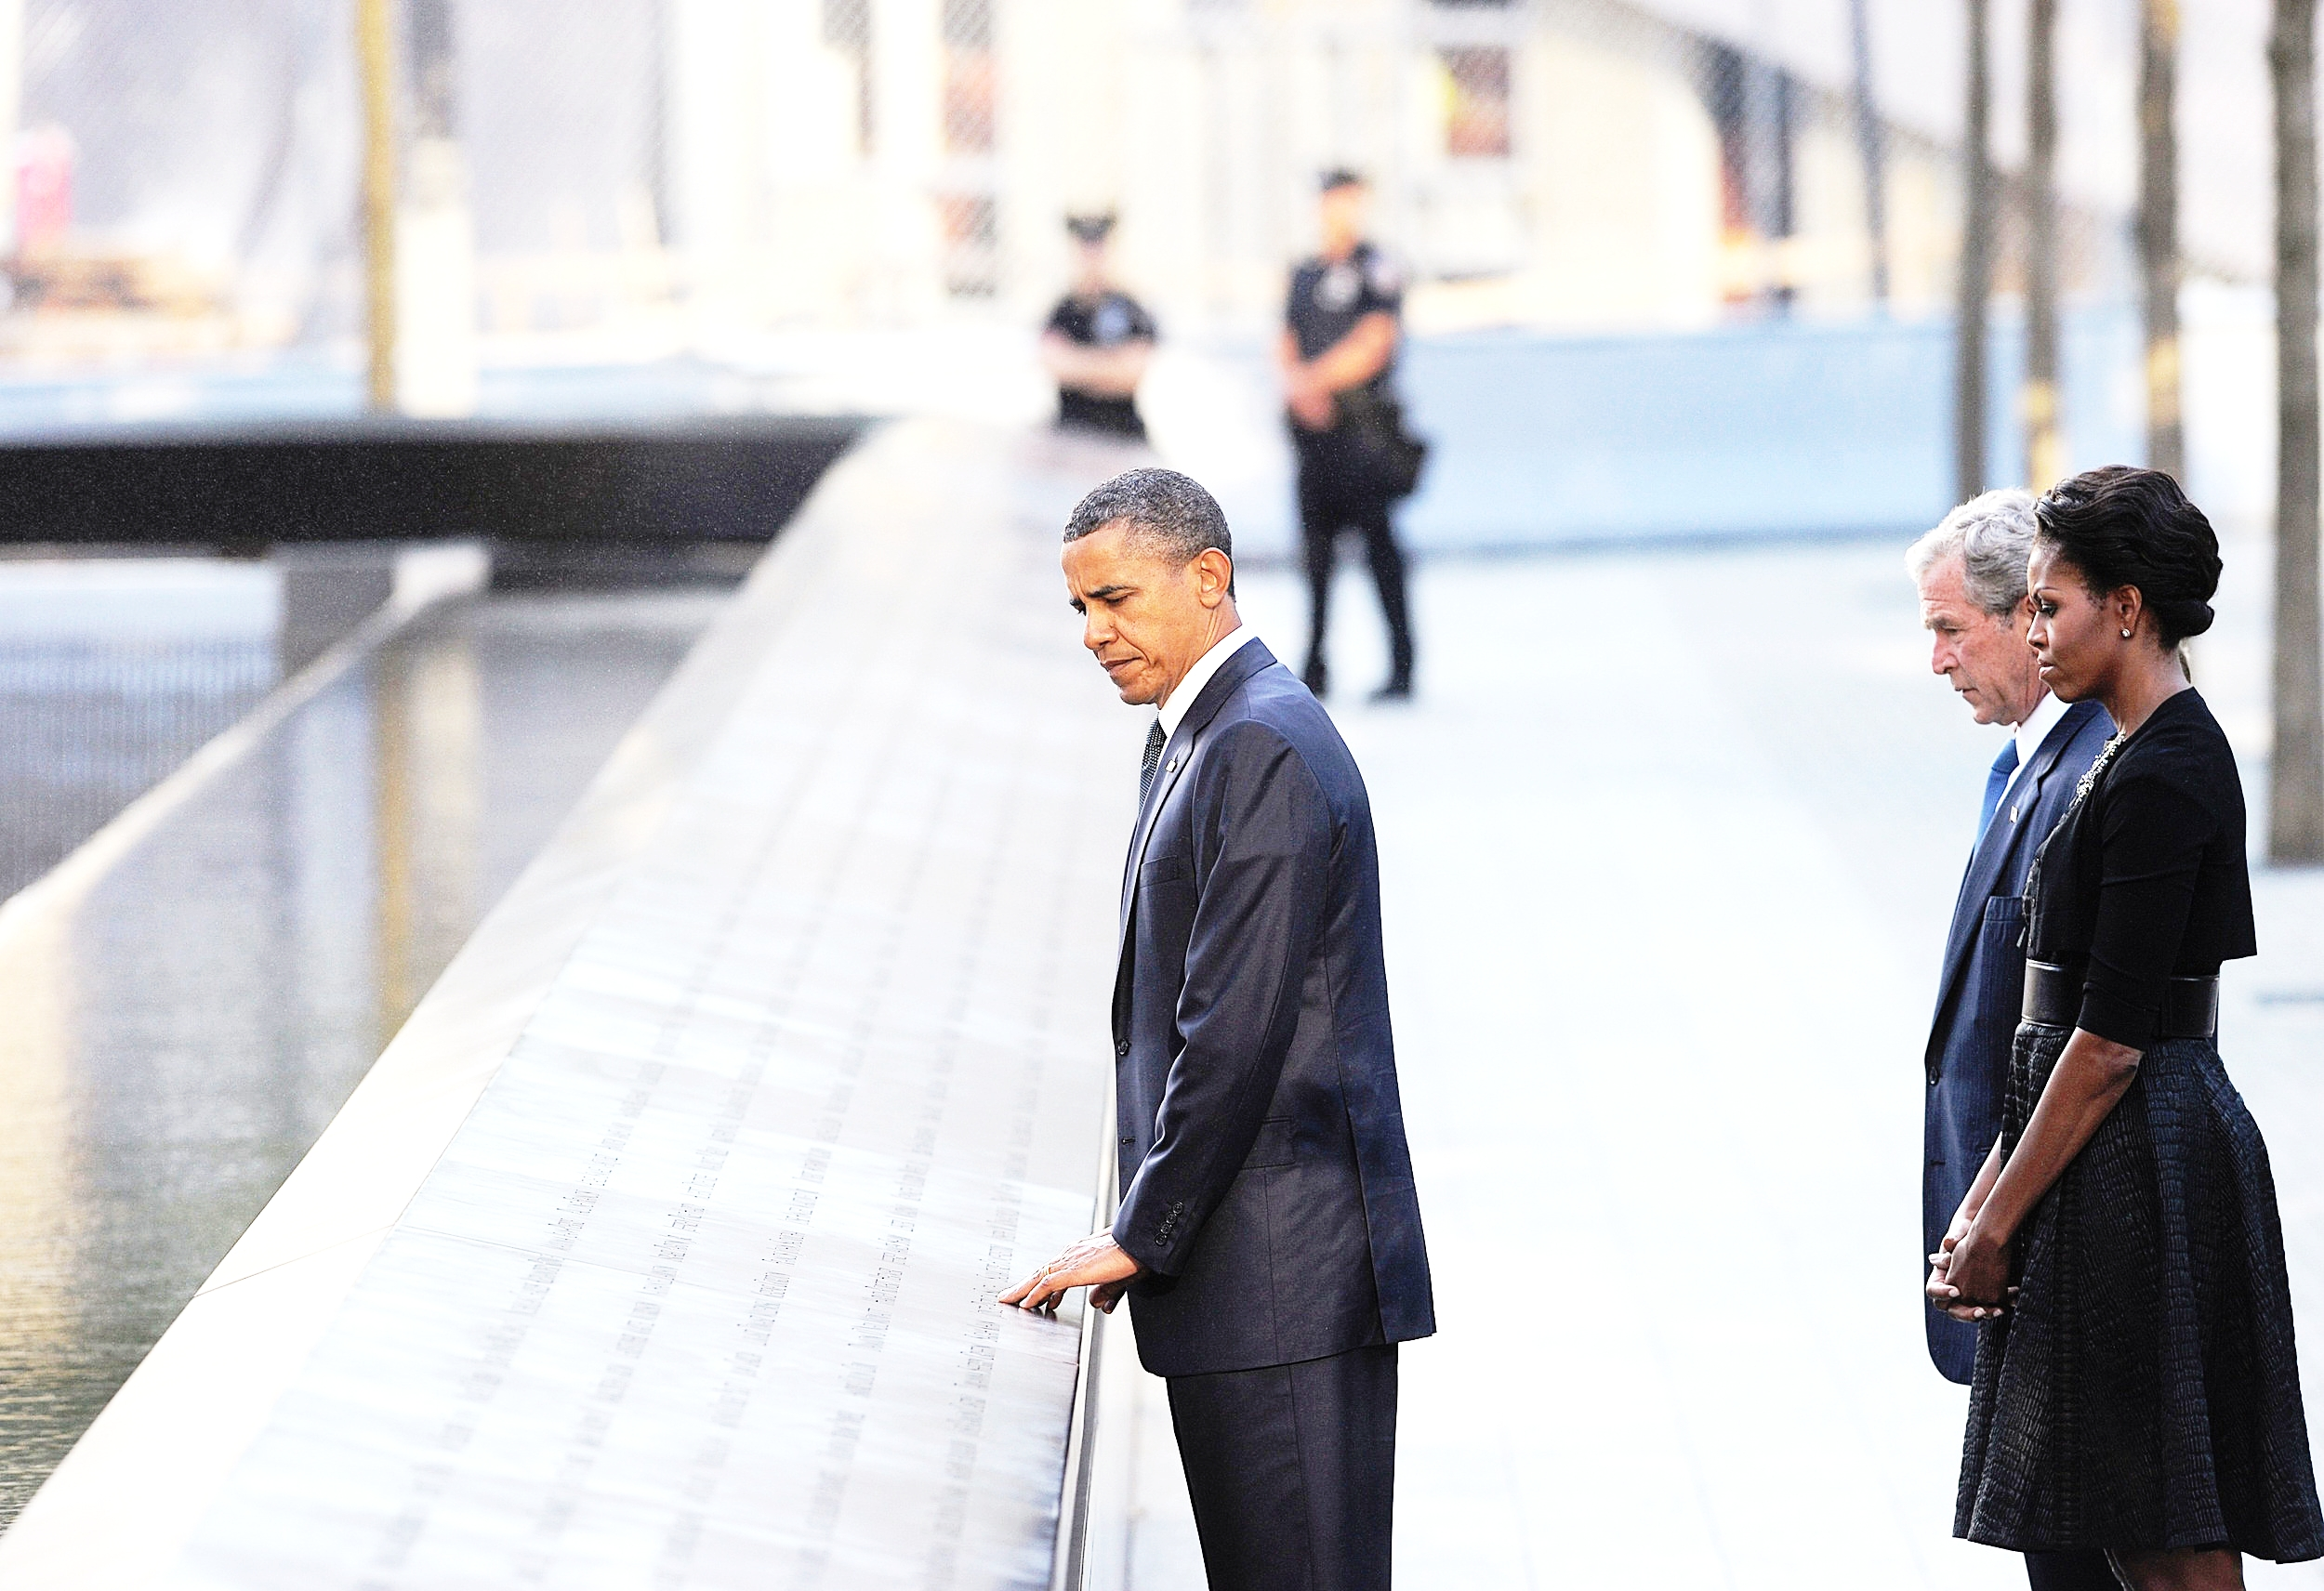 President Barack Obama, Michelle Obama, and President George W. Bush at the 9/11 National Memorial in Lower Manhattan